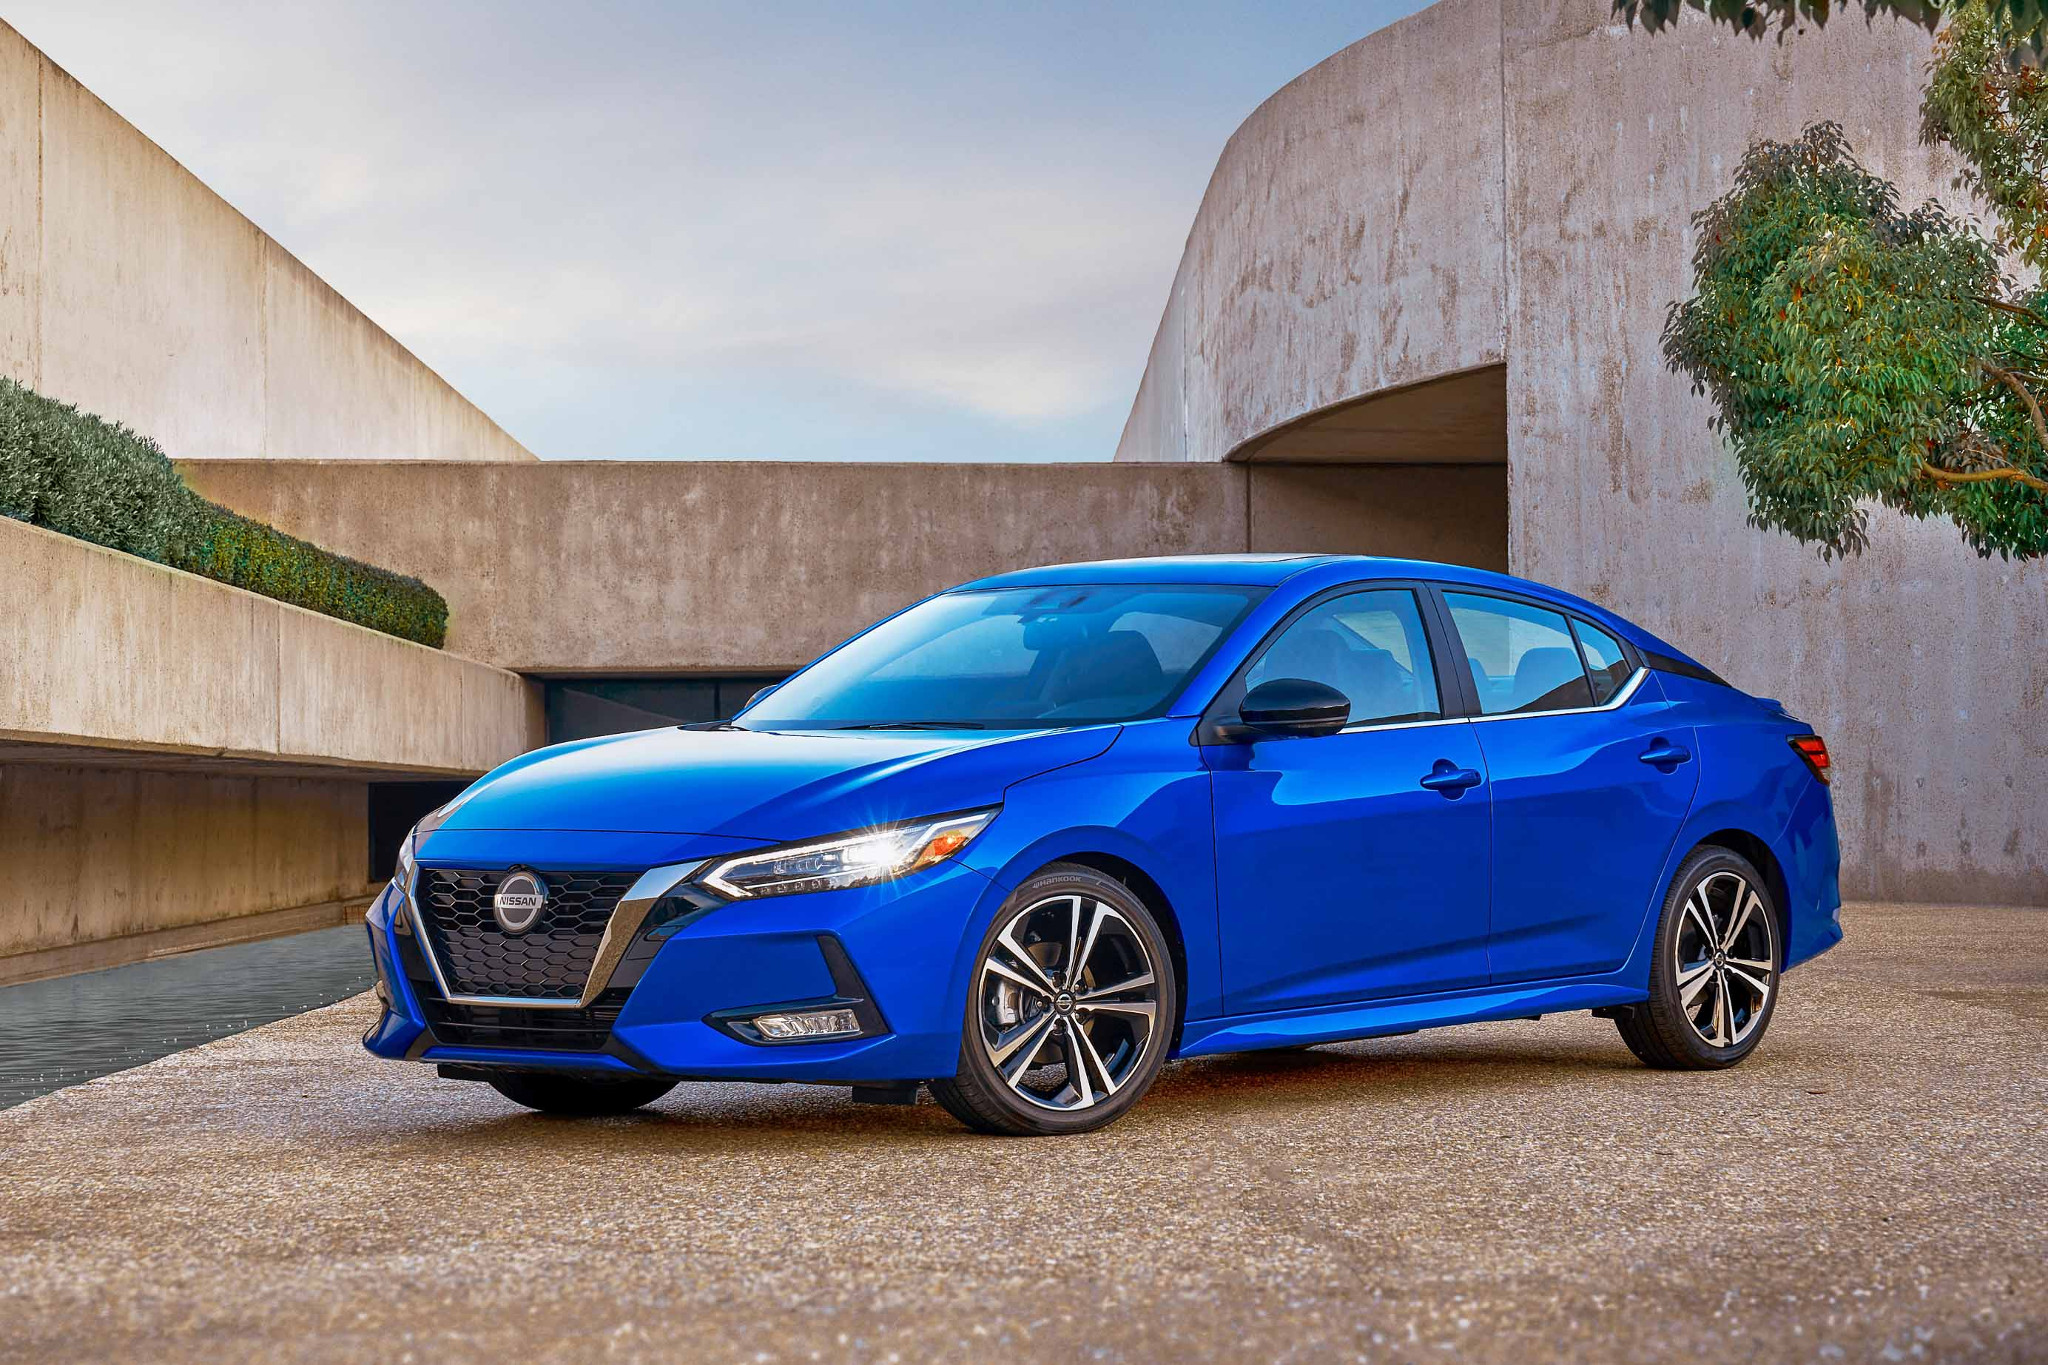 2020 Nissan Sentra: Taking a Stand for Sedans